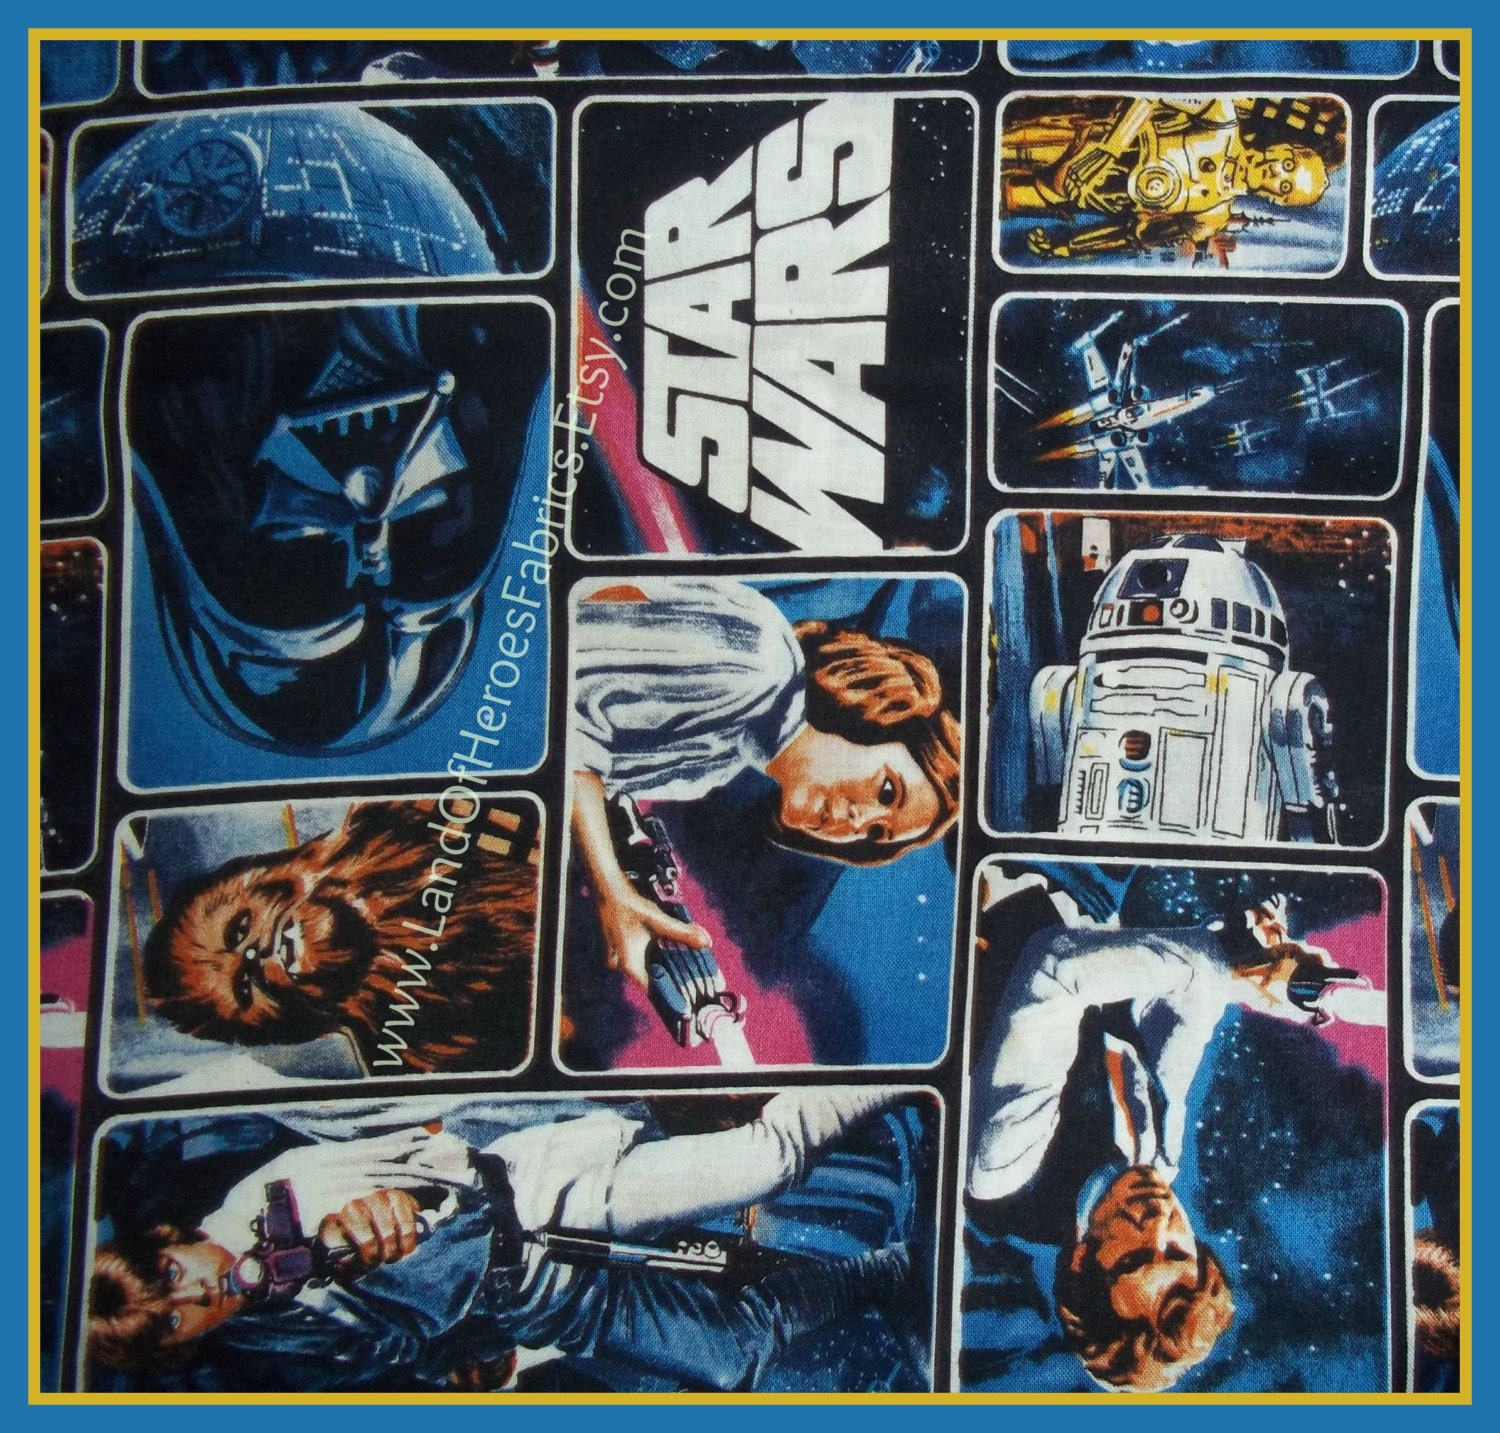 Star Wars Classic Cotton Fabric by Camelot Featuring Luke